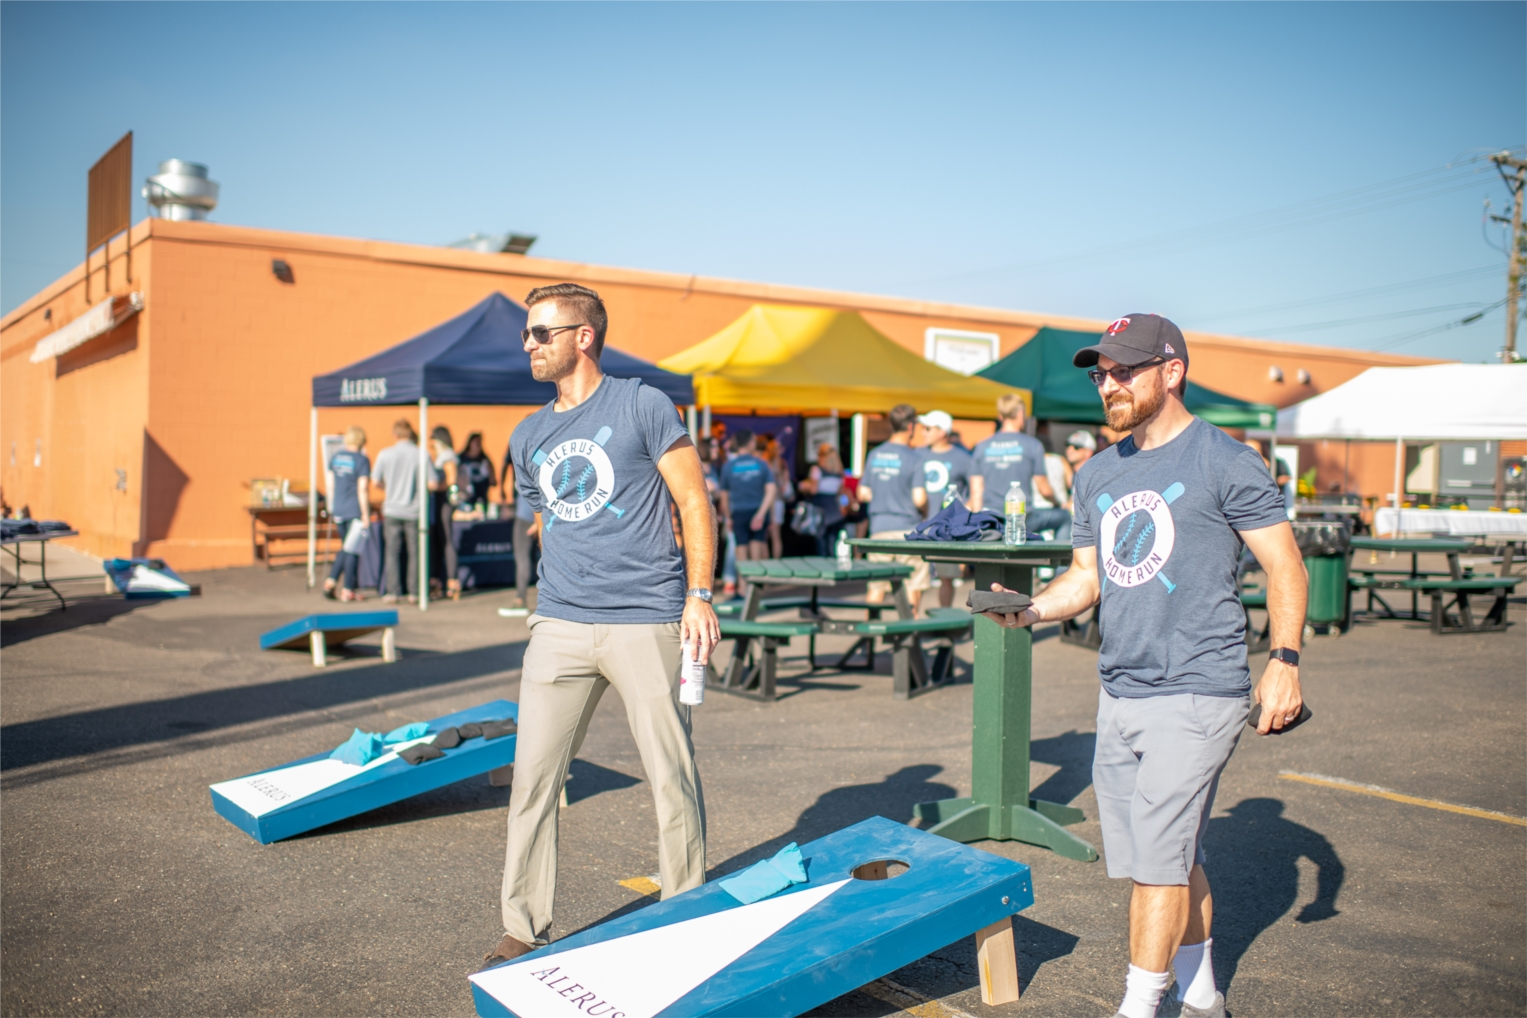 Alerus employees hosting guests during a tailgating-style event.